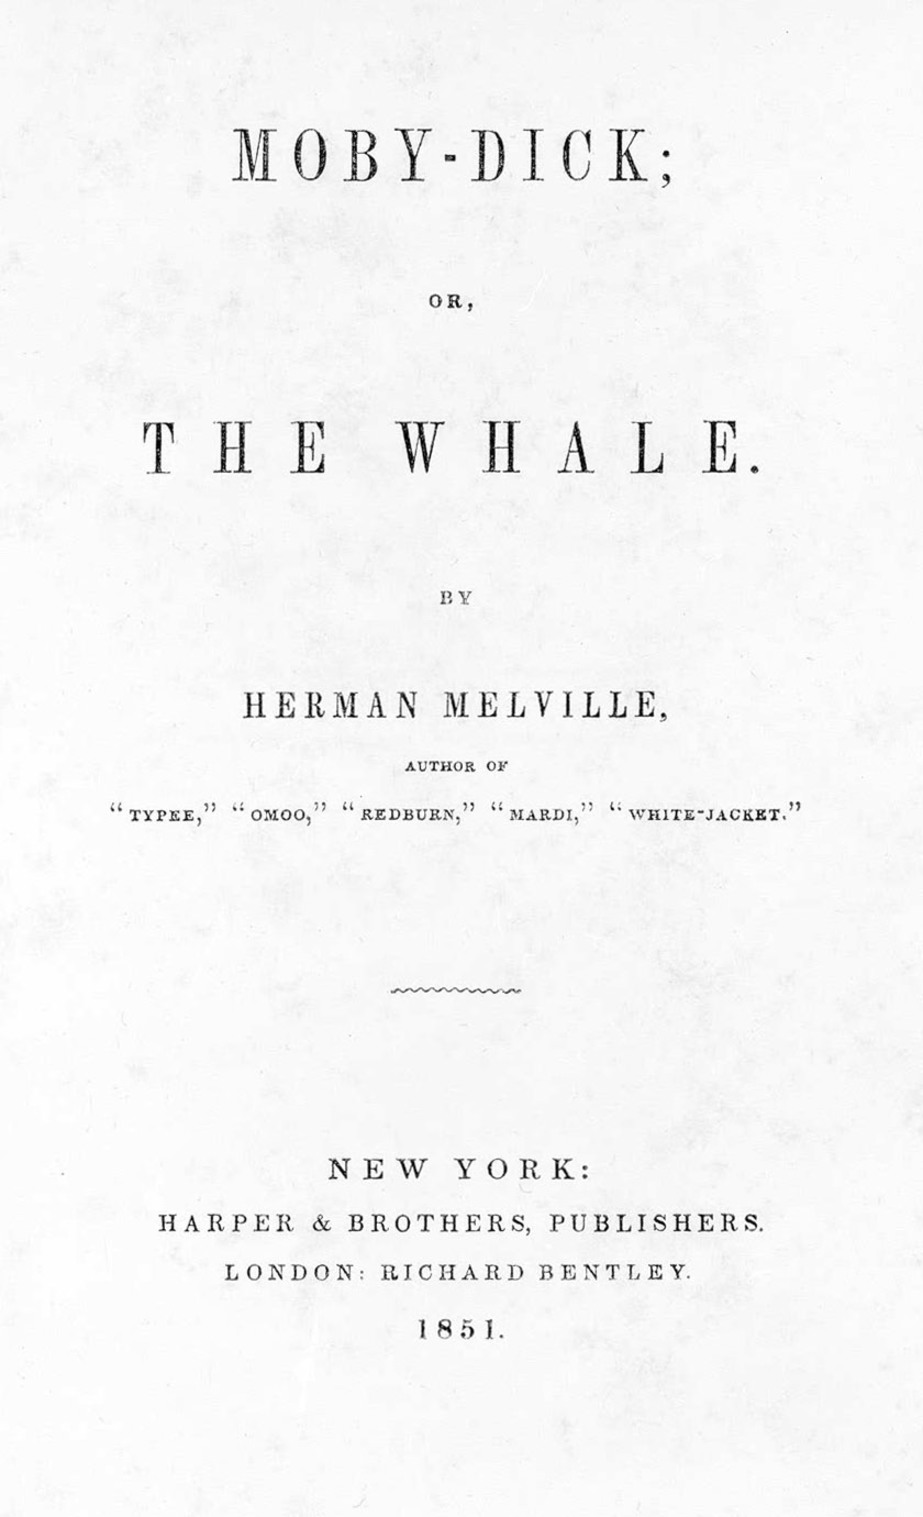 guide to the classics moby dick by herman melville at the  guide to the classics moby dick by herman melville at the bookshelf